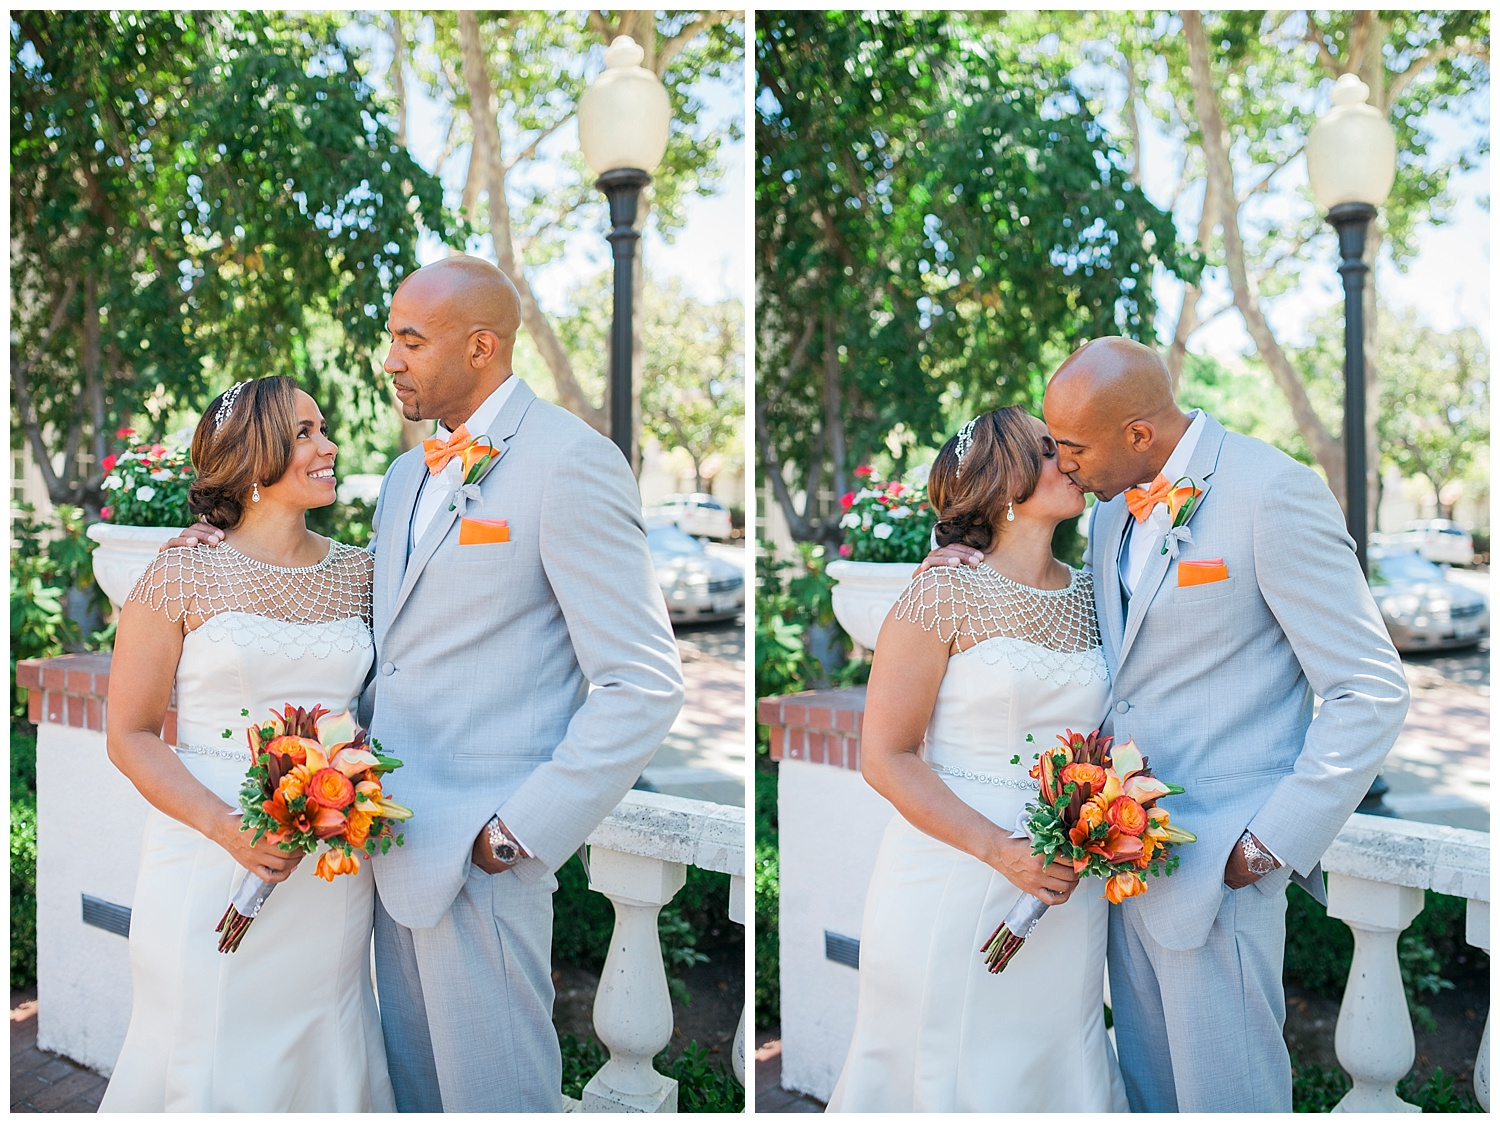 SACRAMENTO_WEDDING_VIZCAYA_PHOTOGRAPHY_SUNFLOWERS_NICOLEQUIROZ_14.jpg